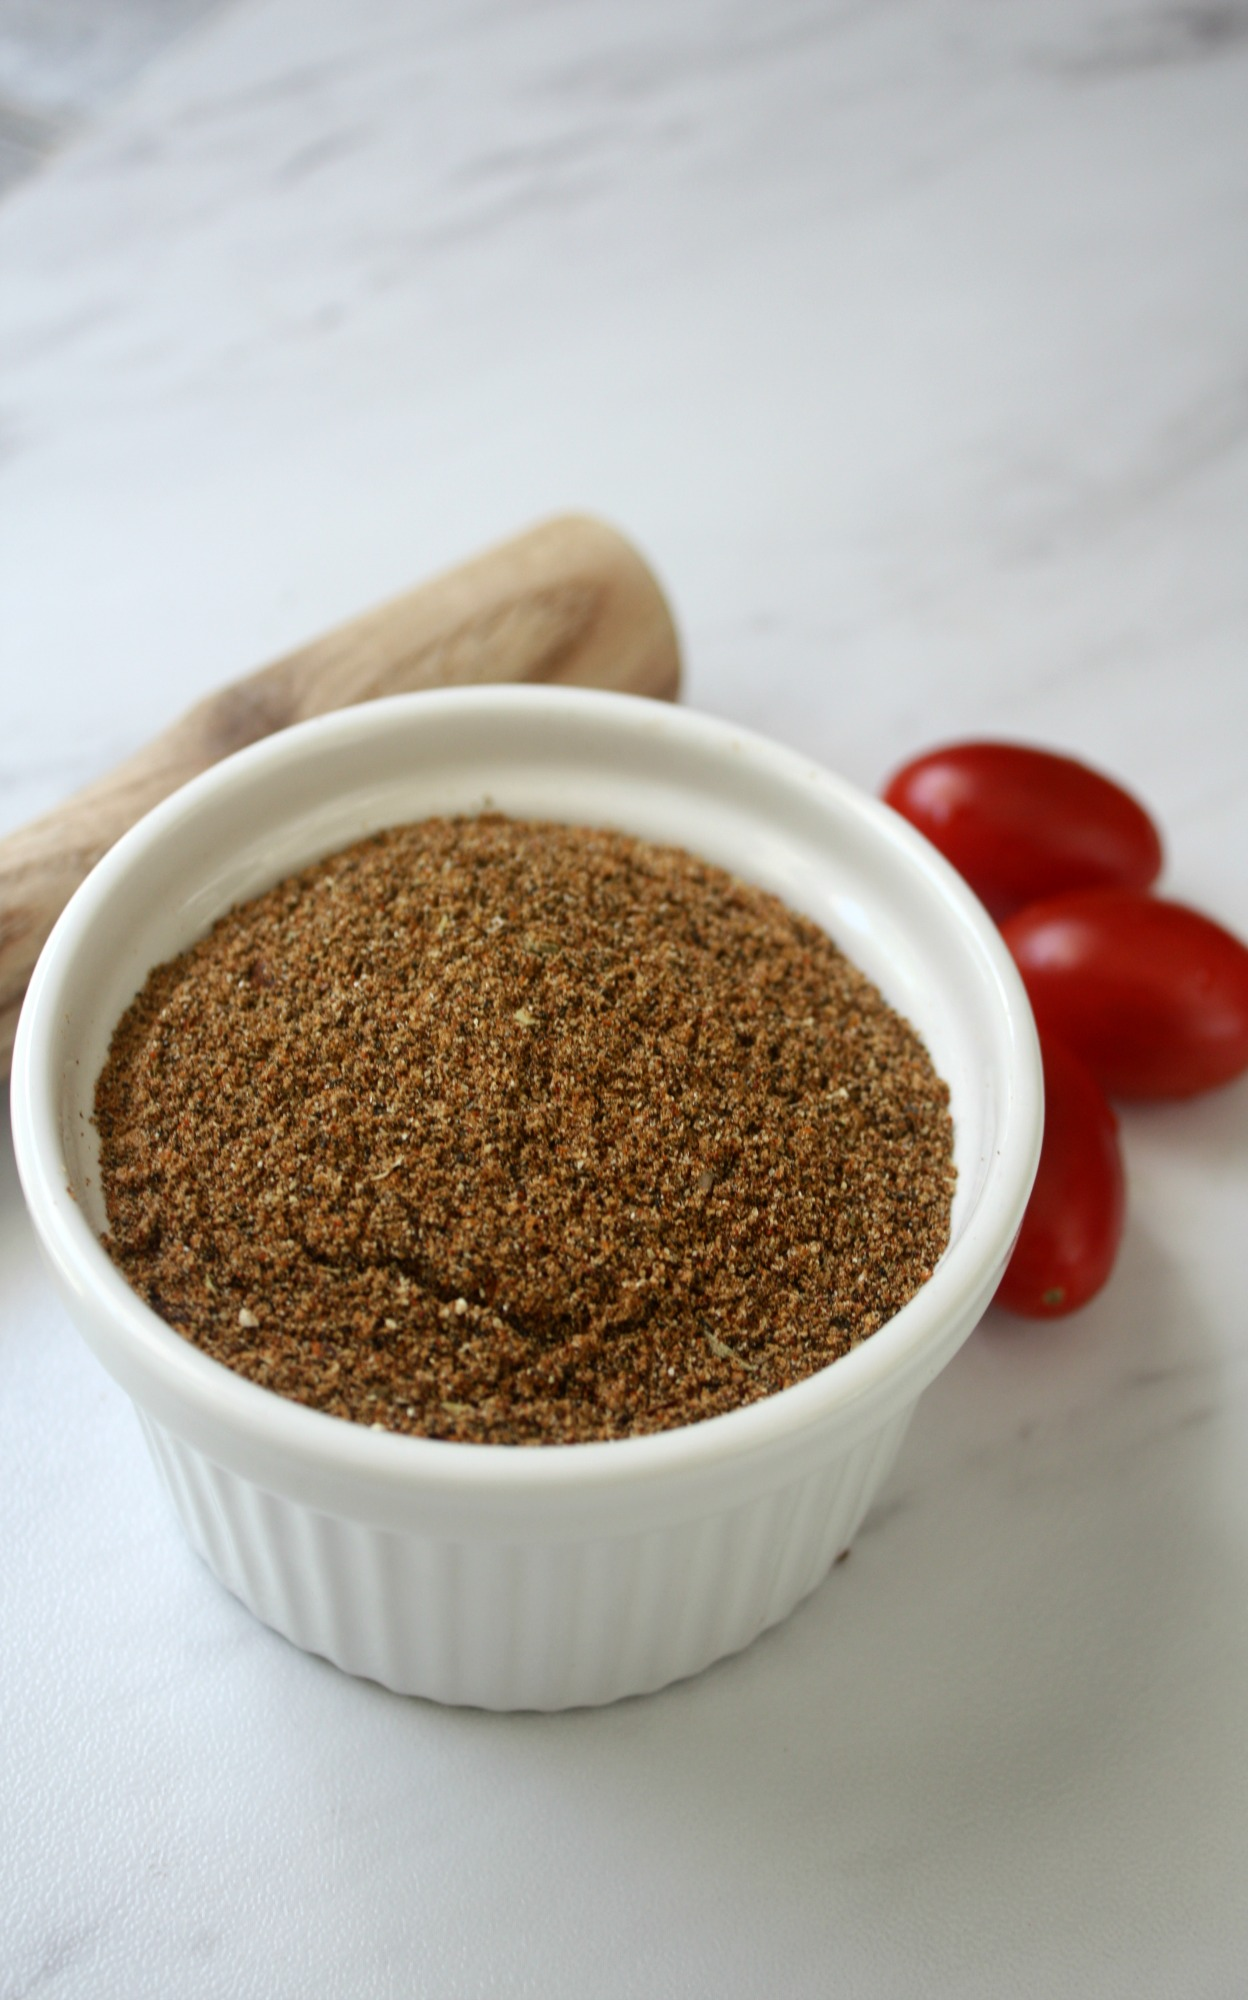 Homemade Taco Seasoning Mix Recipe. Use in tacos, burritos, and nachos. You will never buy those packets again.